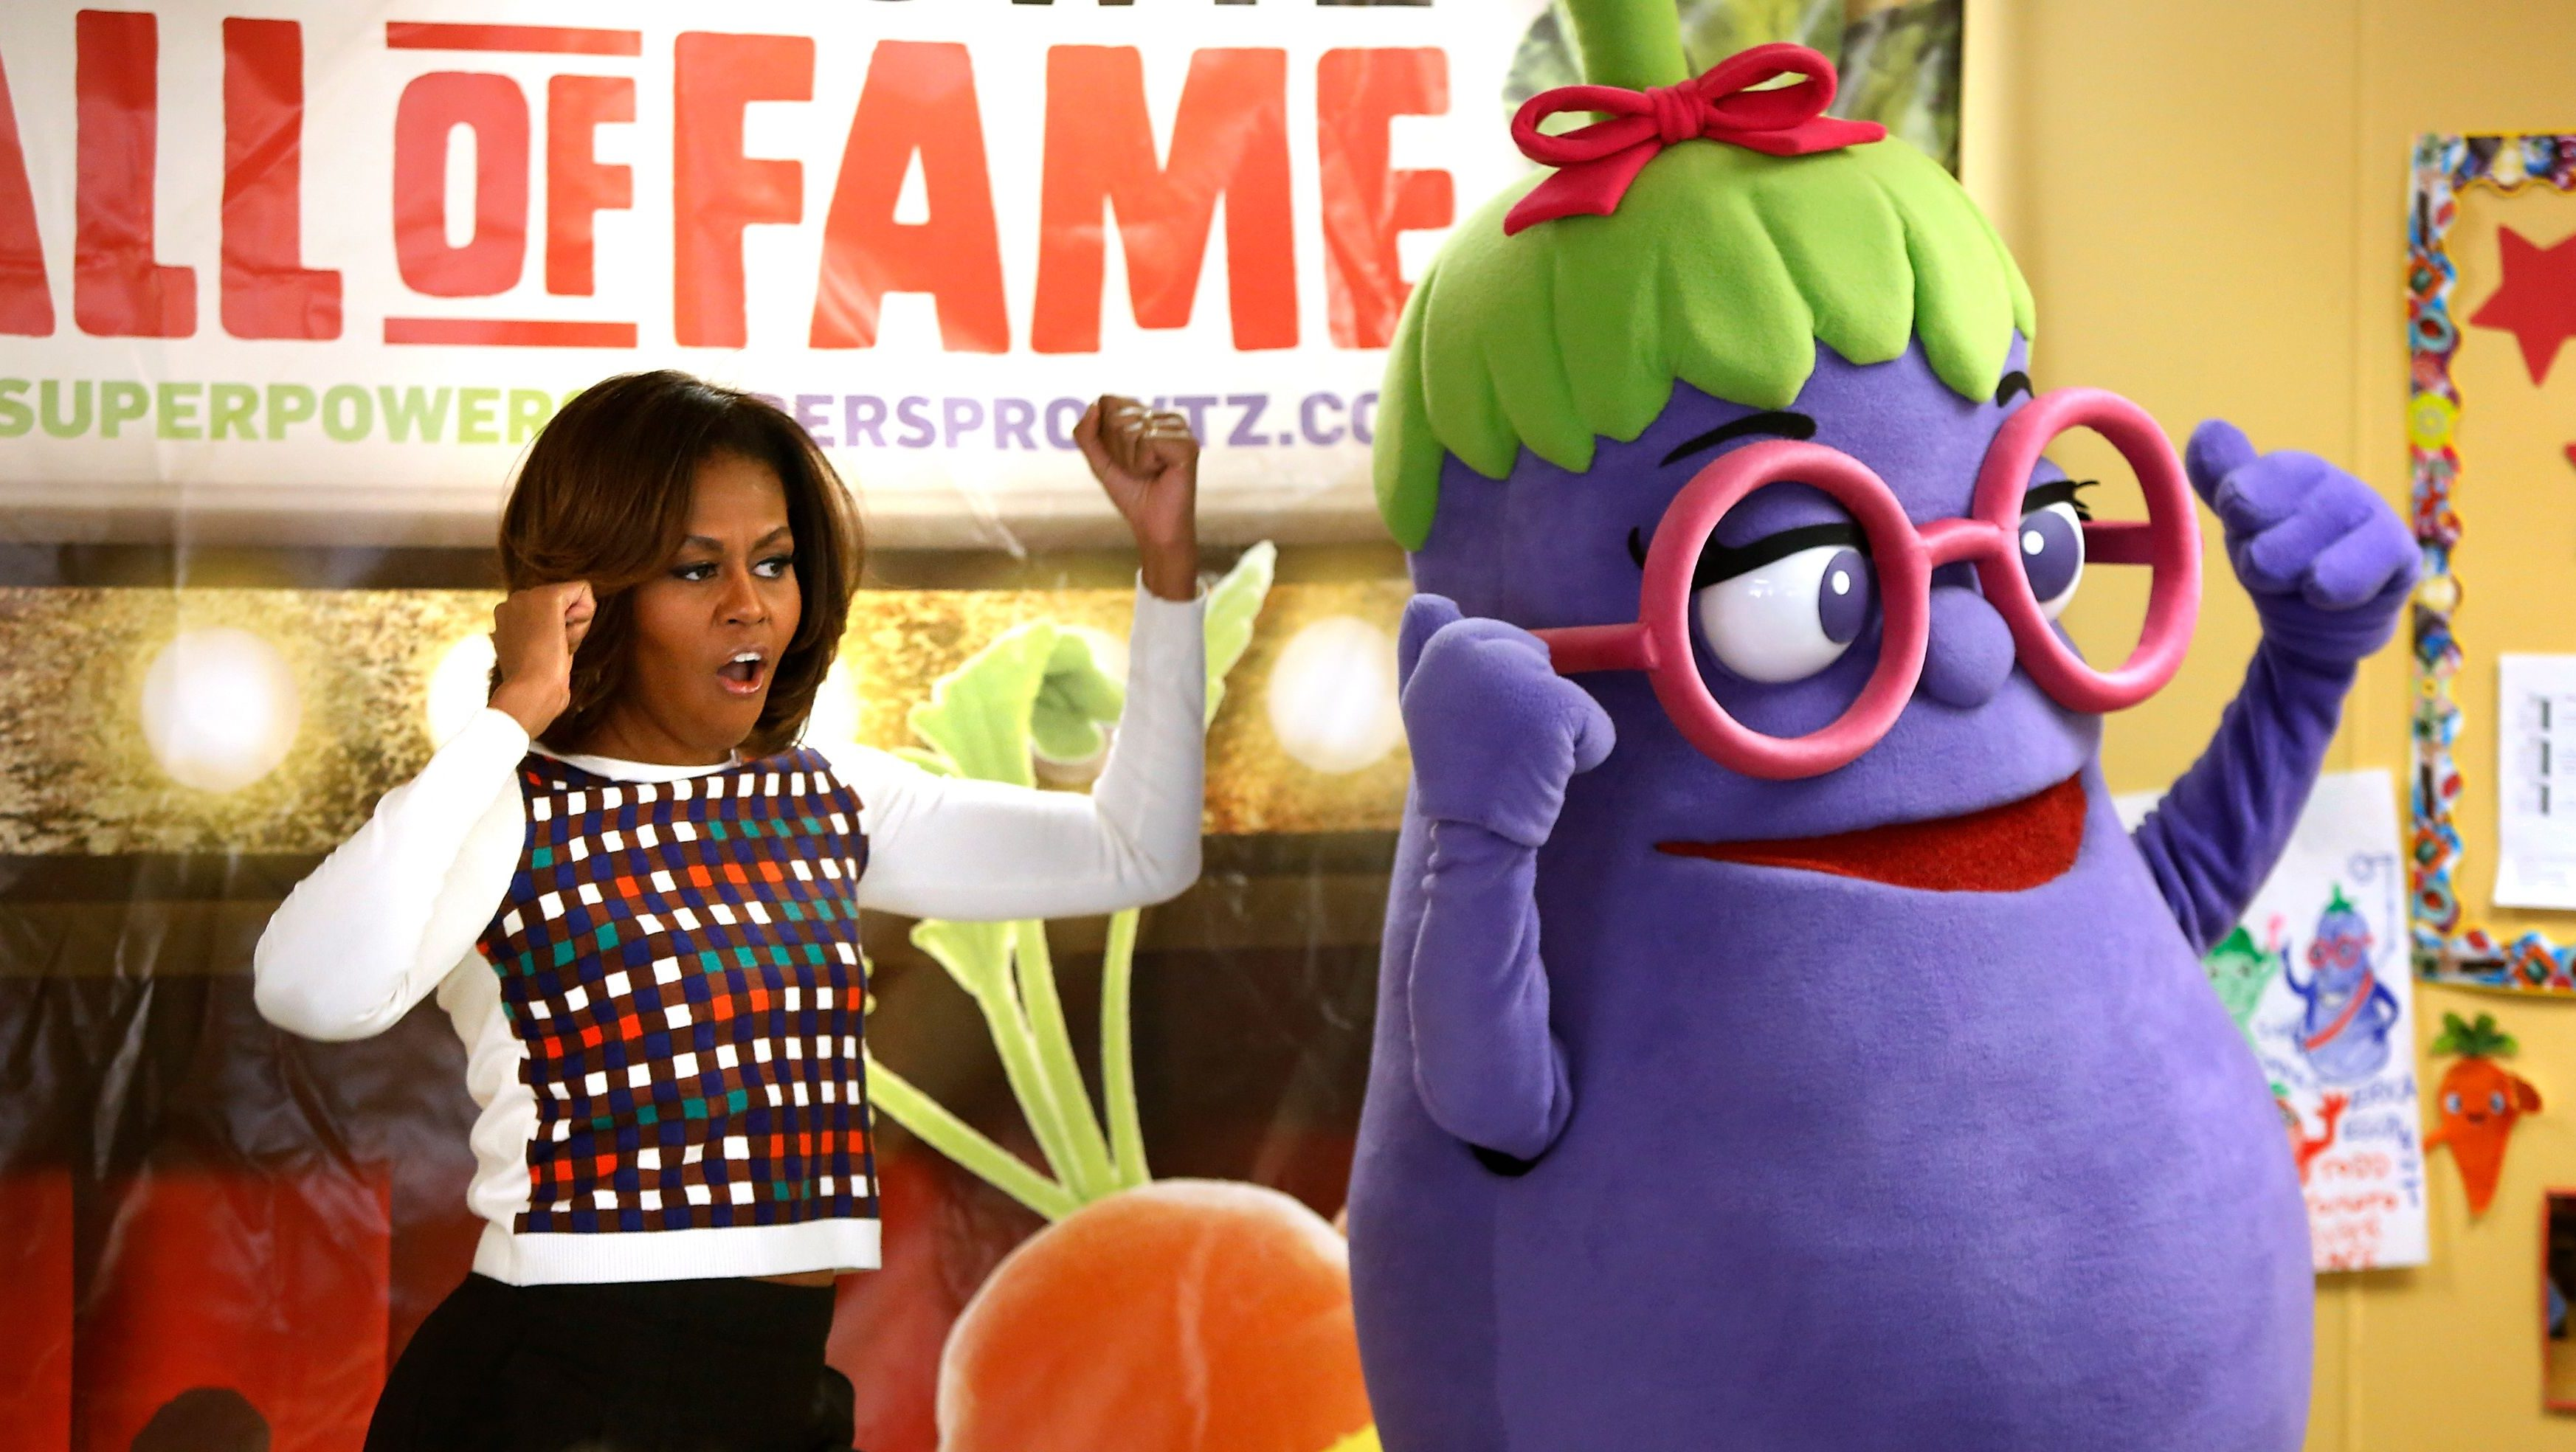 Former US first lady Michelle Obama dances with an eggplant from the Super Sprowtz at a La Petite Academy chid care center in Bowie, Maryland, on February 27, 2014.